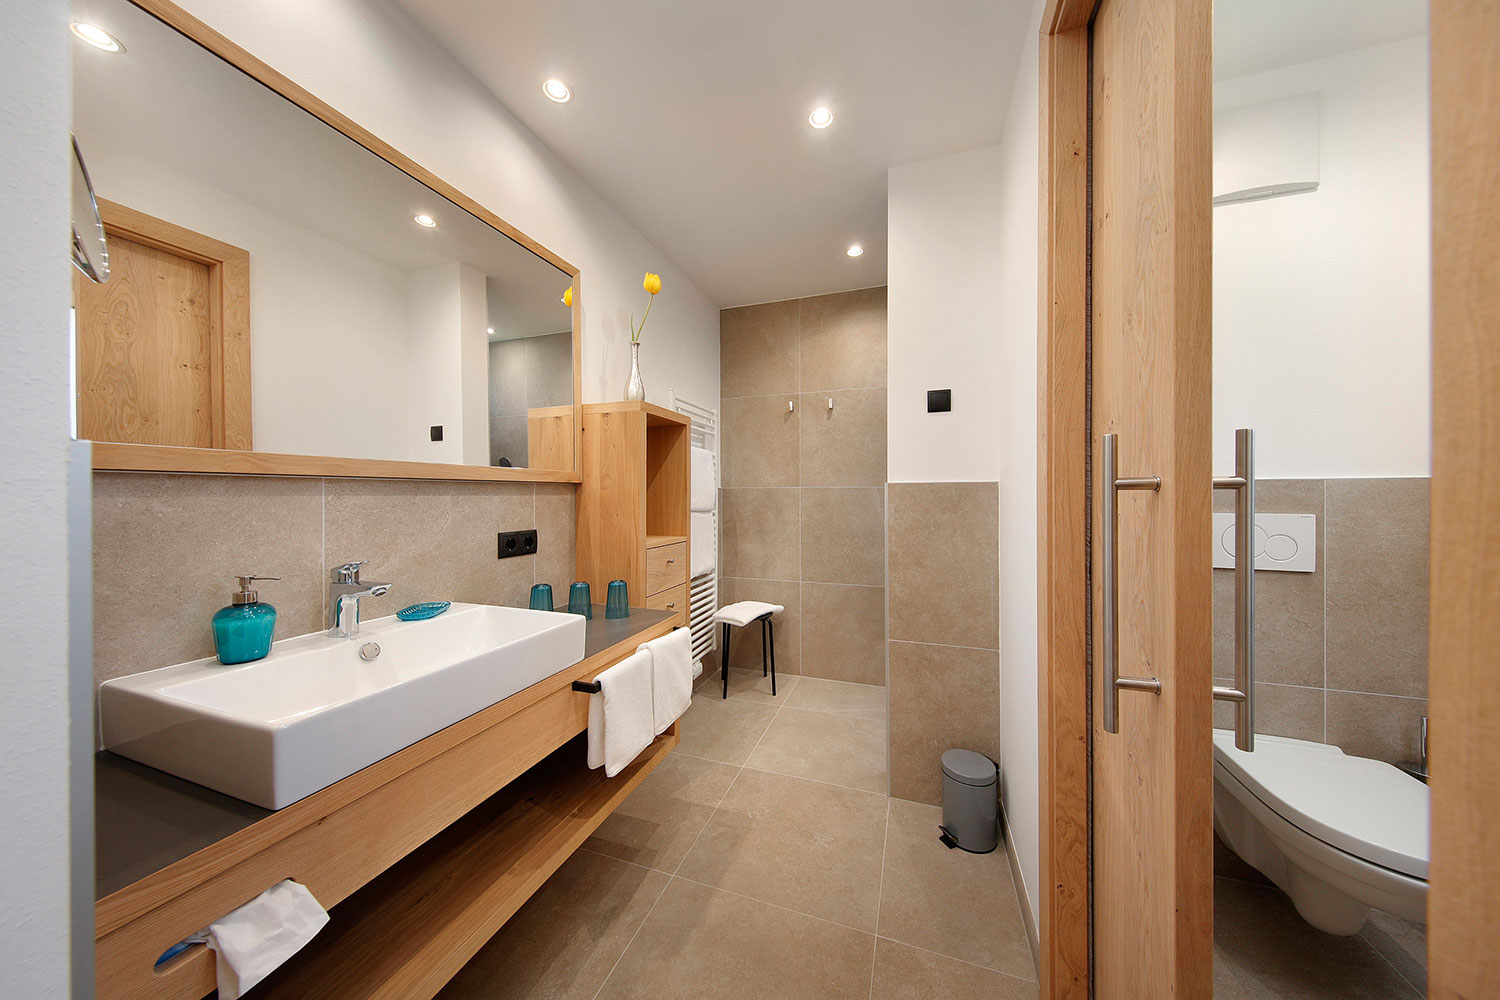 Bathroom with shower and separate toilet